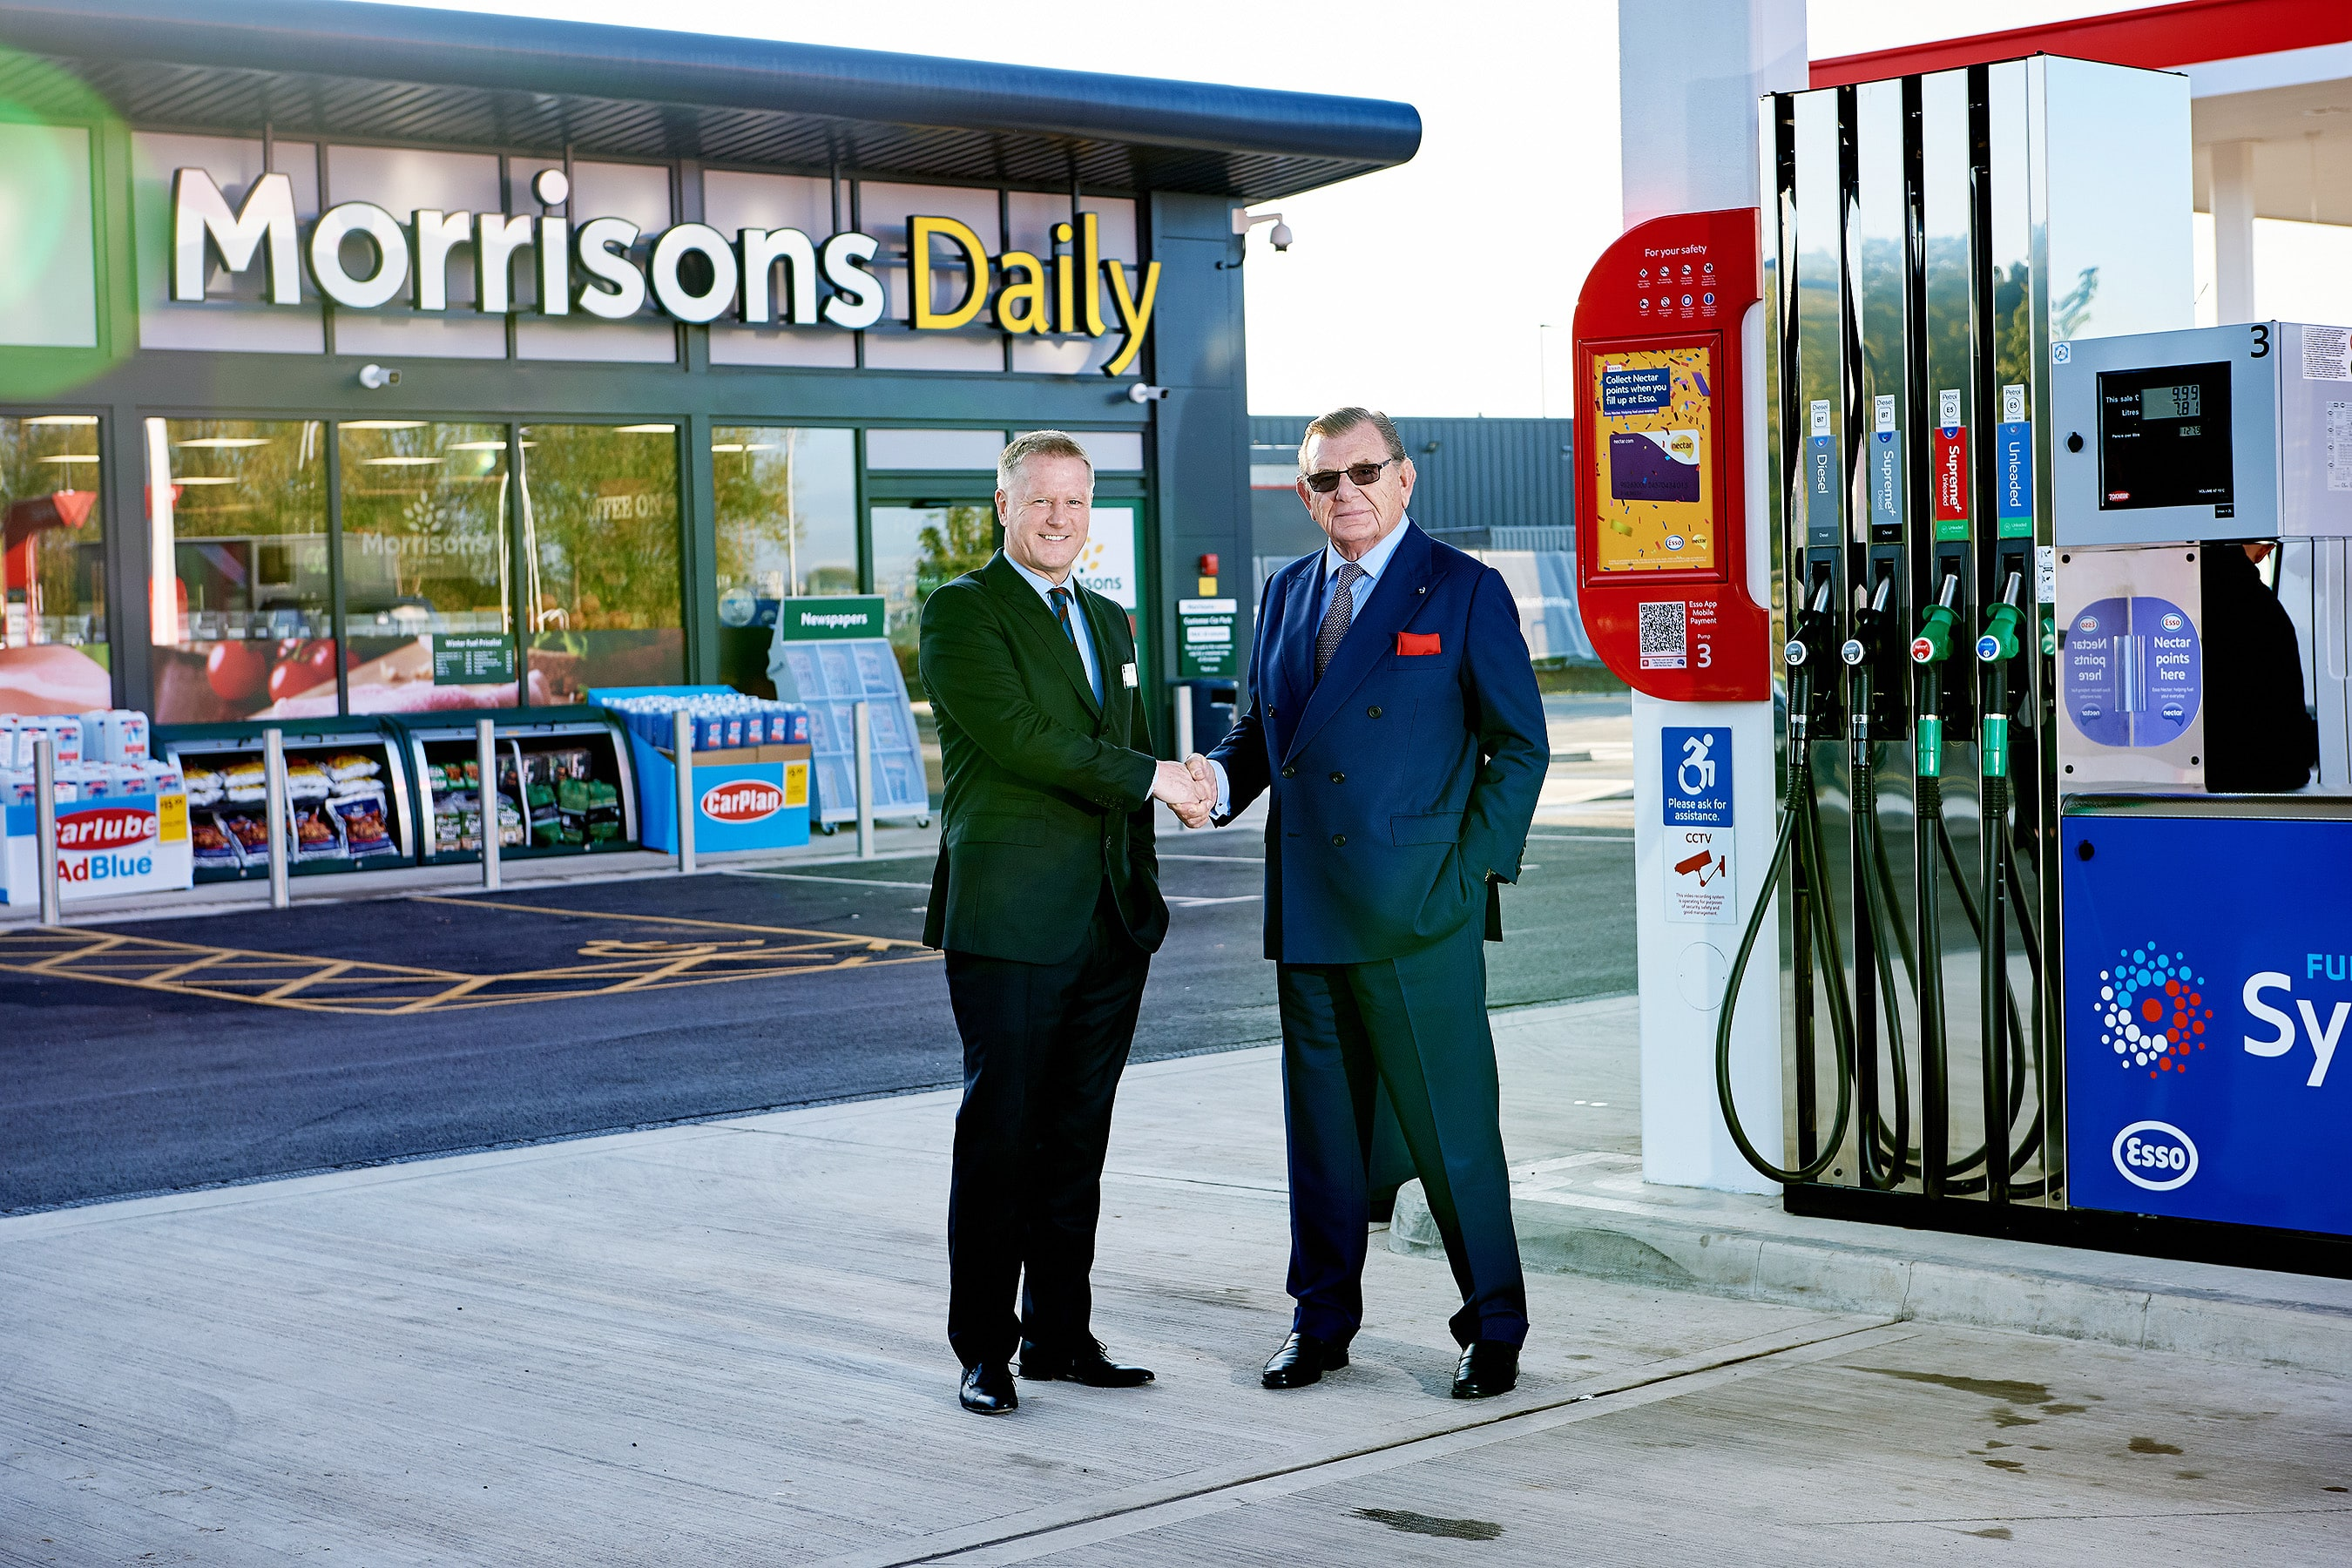 Morrisons and Rontec extend their partnership